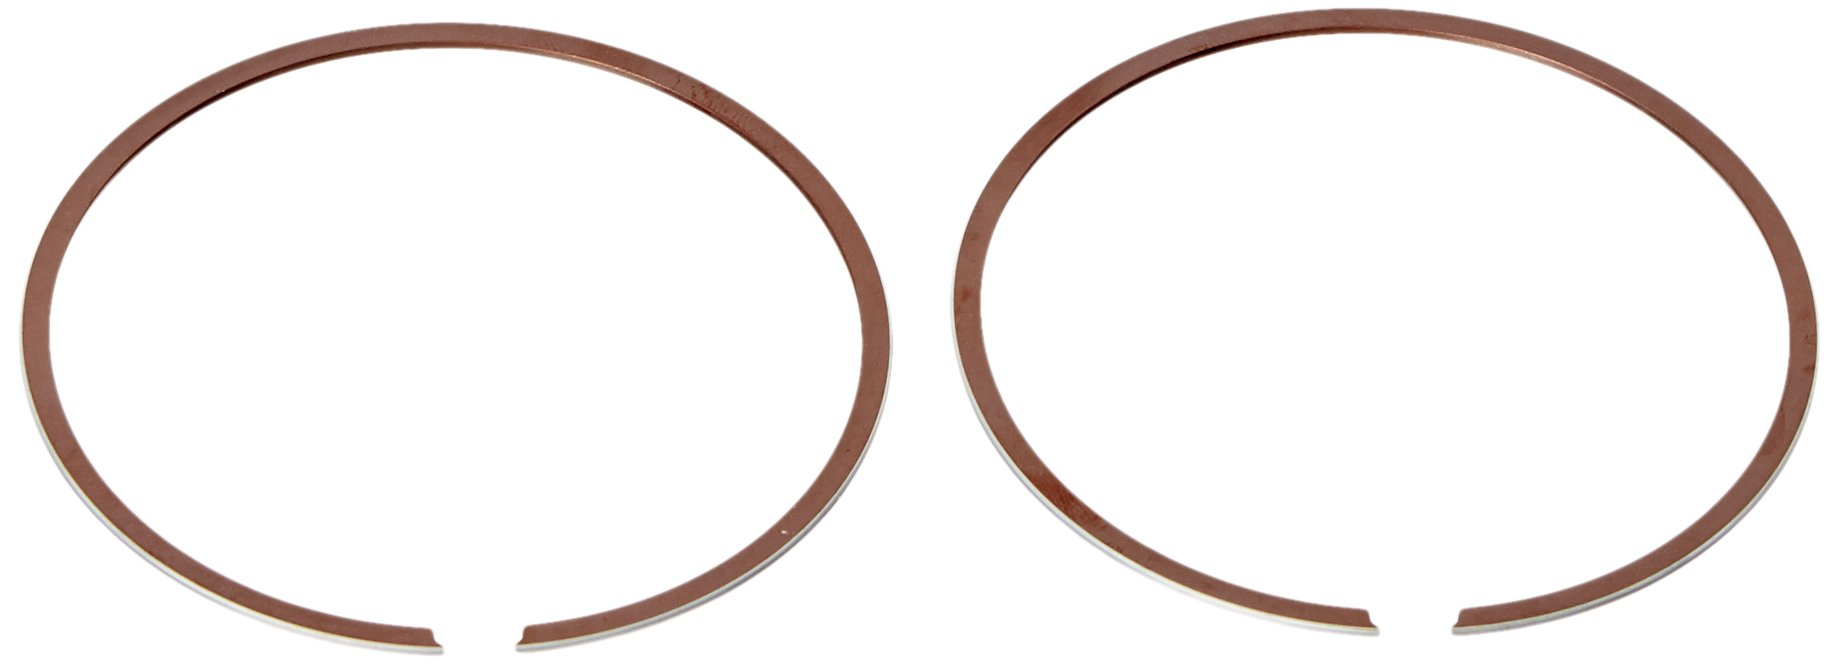 Wiseco 2614CD Ring Set for 66.40mm Cylinder Bore